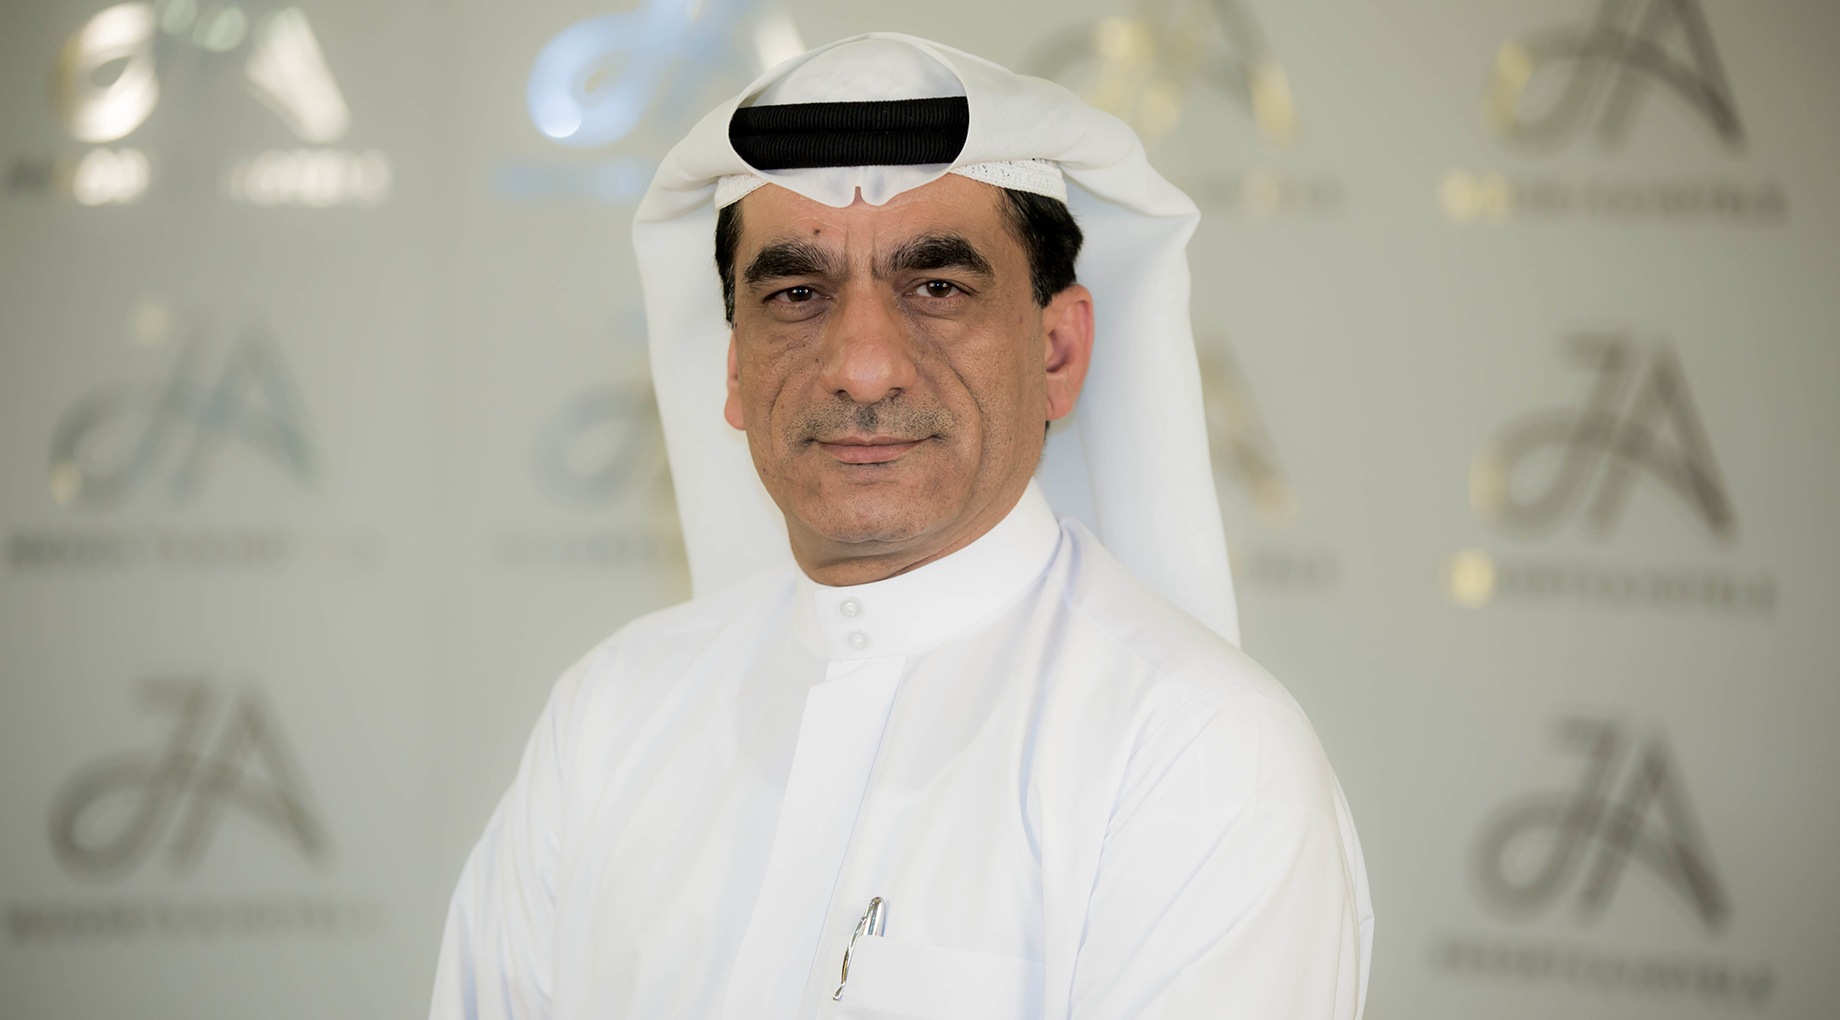 JA Resorts & Hotels appointed Emirati national to the role of Group Director of Security.